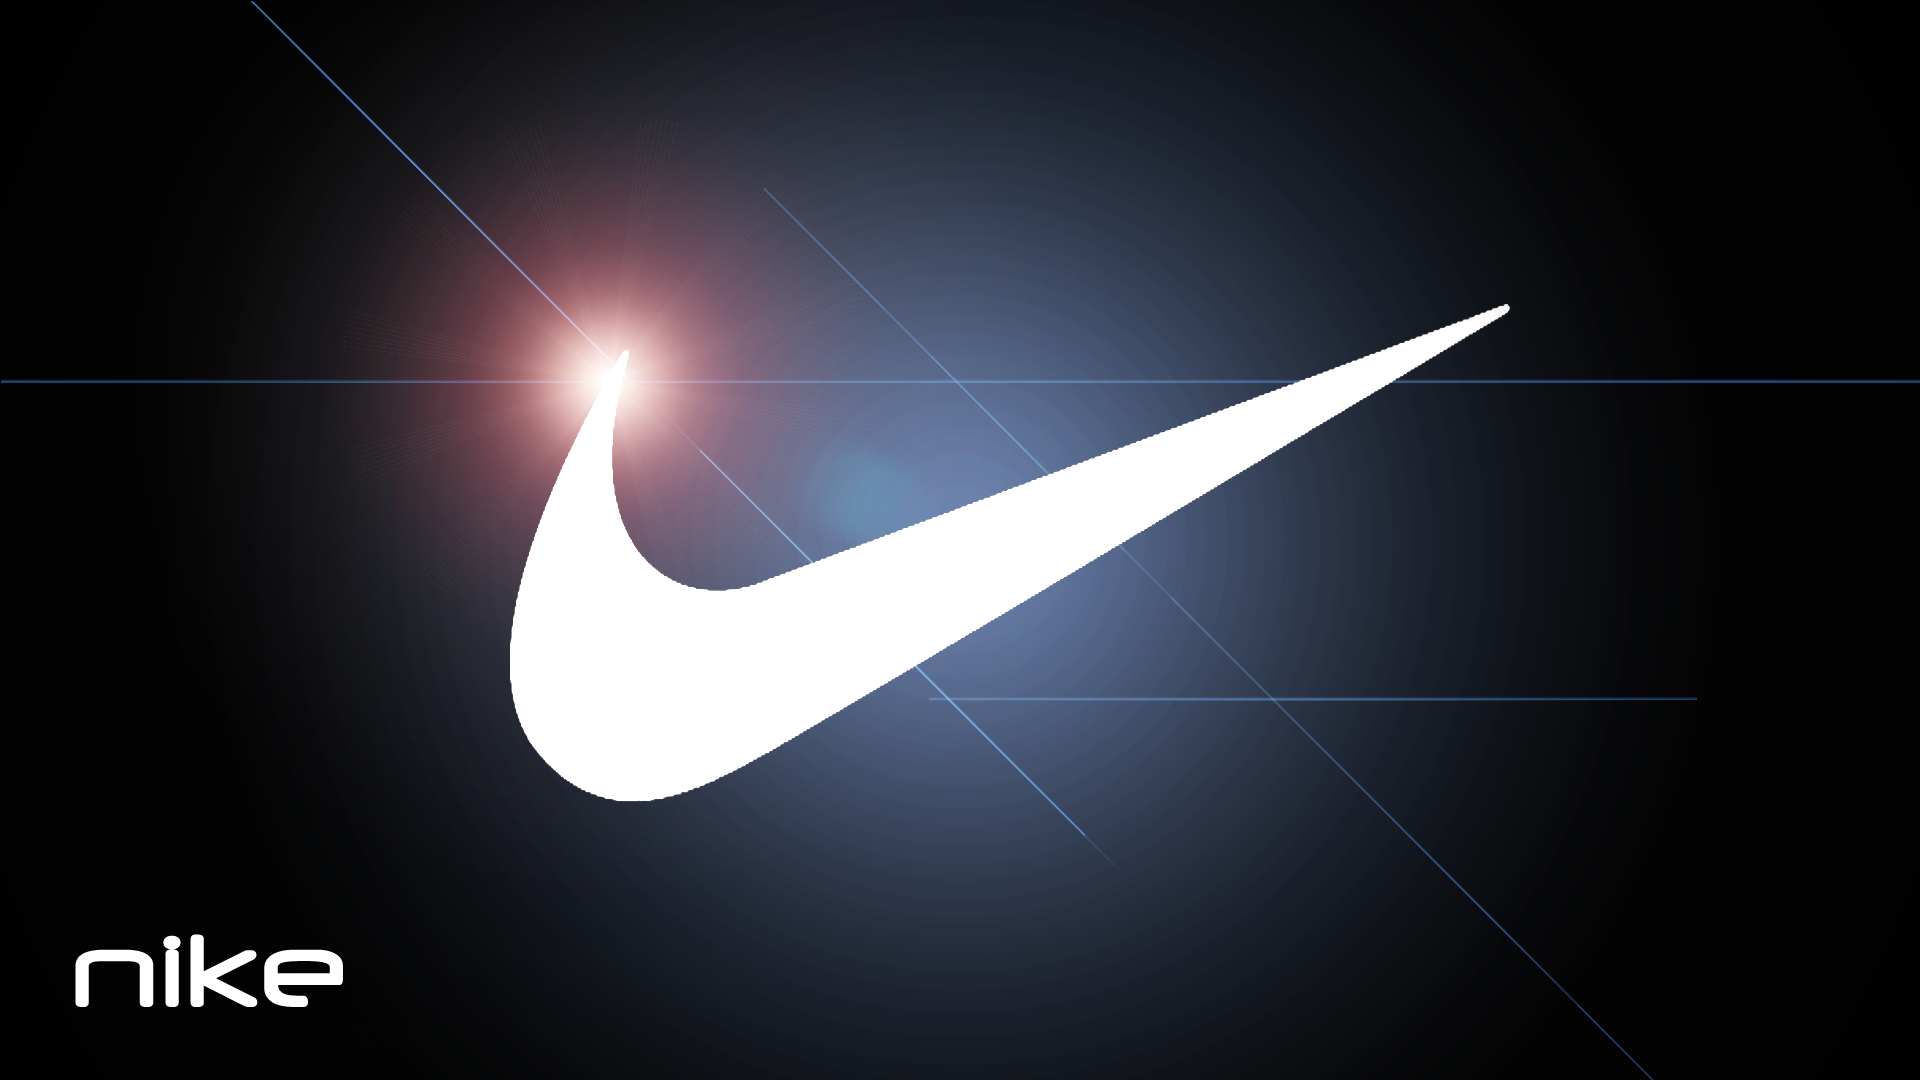 nike womens soccer wallpaper